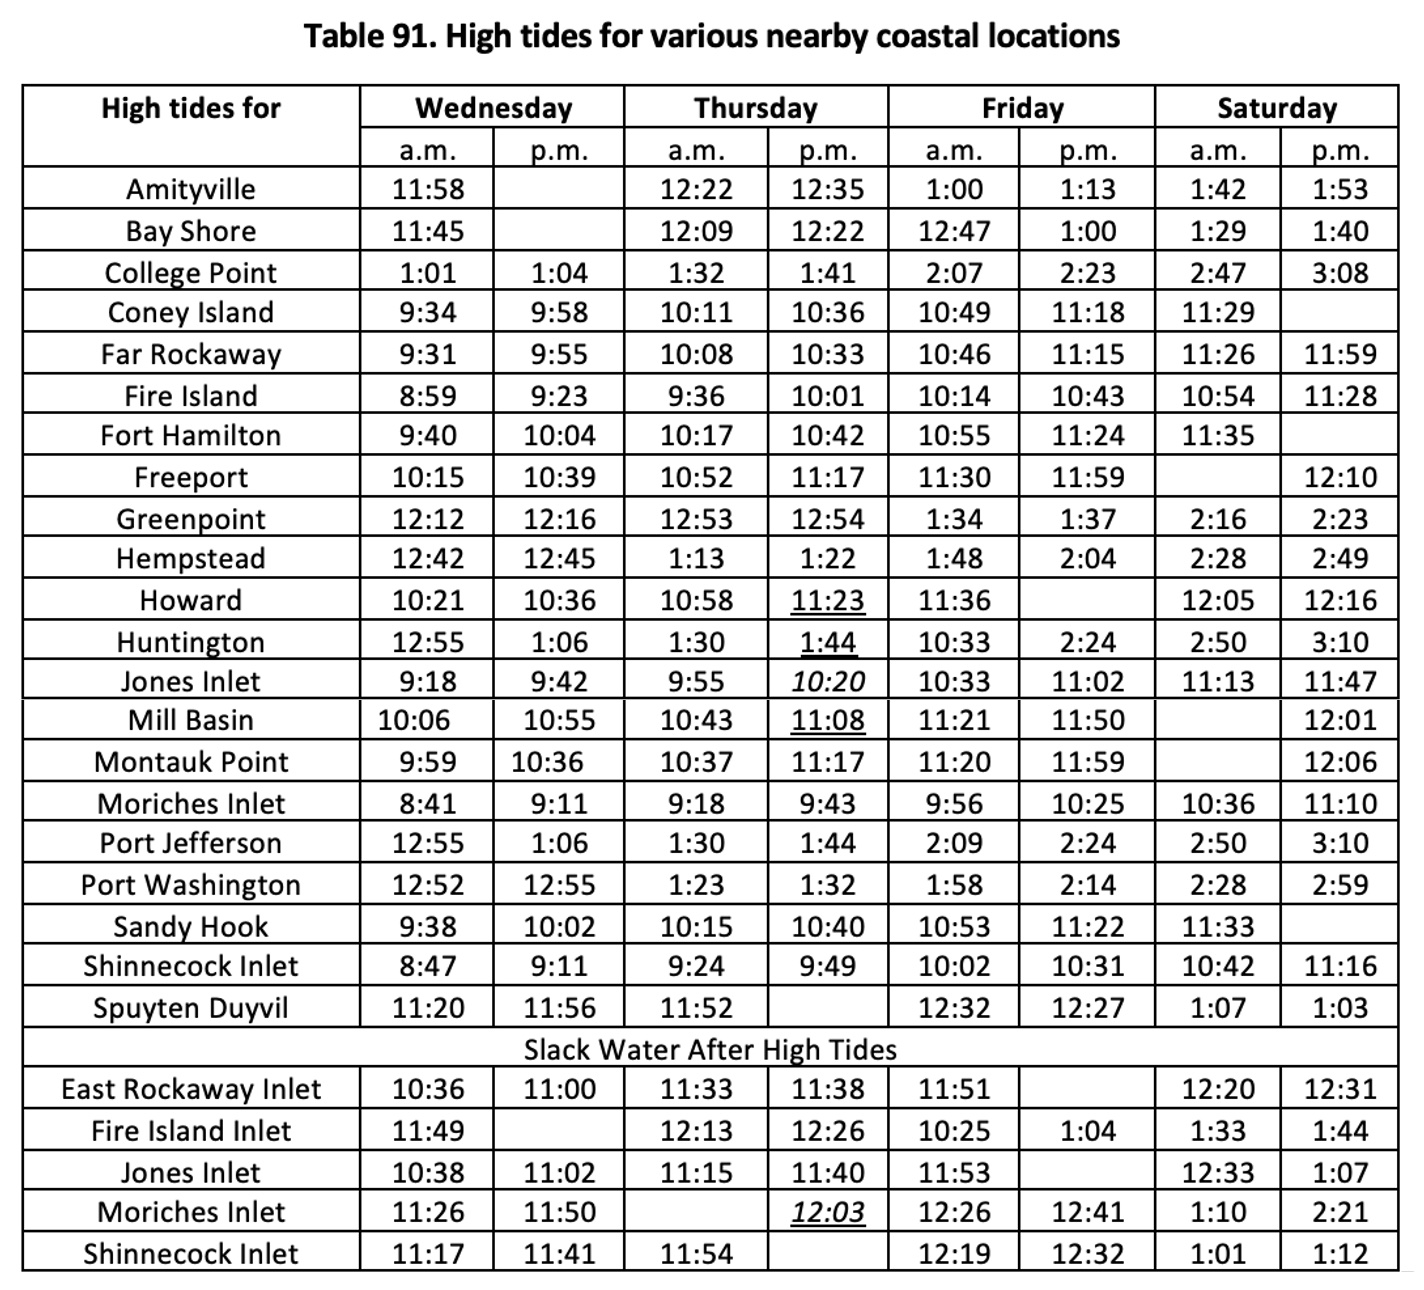 Table 9.1 shows high tides for various nearby coastal locations. Of particular note it shows that high tide will occur on Thursday in Sandy Hook at 10:15am and at 10:40pm. It also shows that high tide will occur at Coney Island on Friday at 10:49am and at 11:18pm. The table also includes a list of slack water after high tides. Of particular interest the slack tide at Jones Beach Inlet on Friday will end at 11:53am.